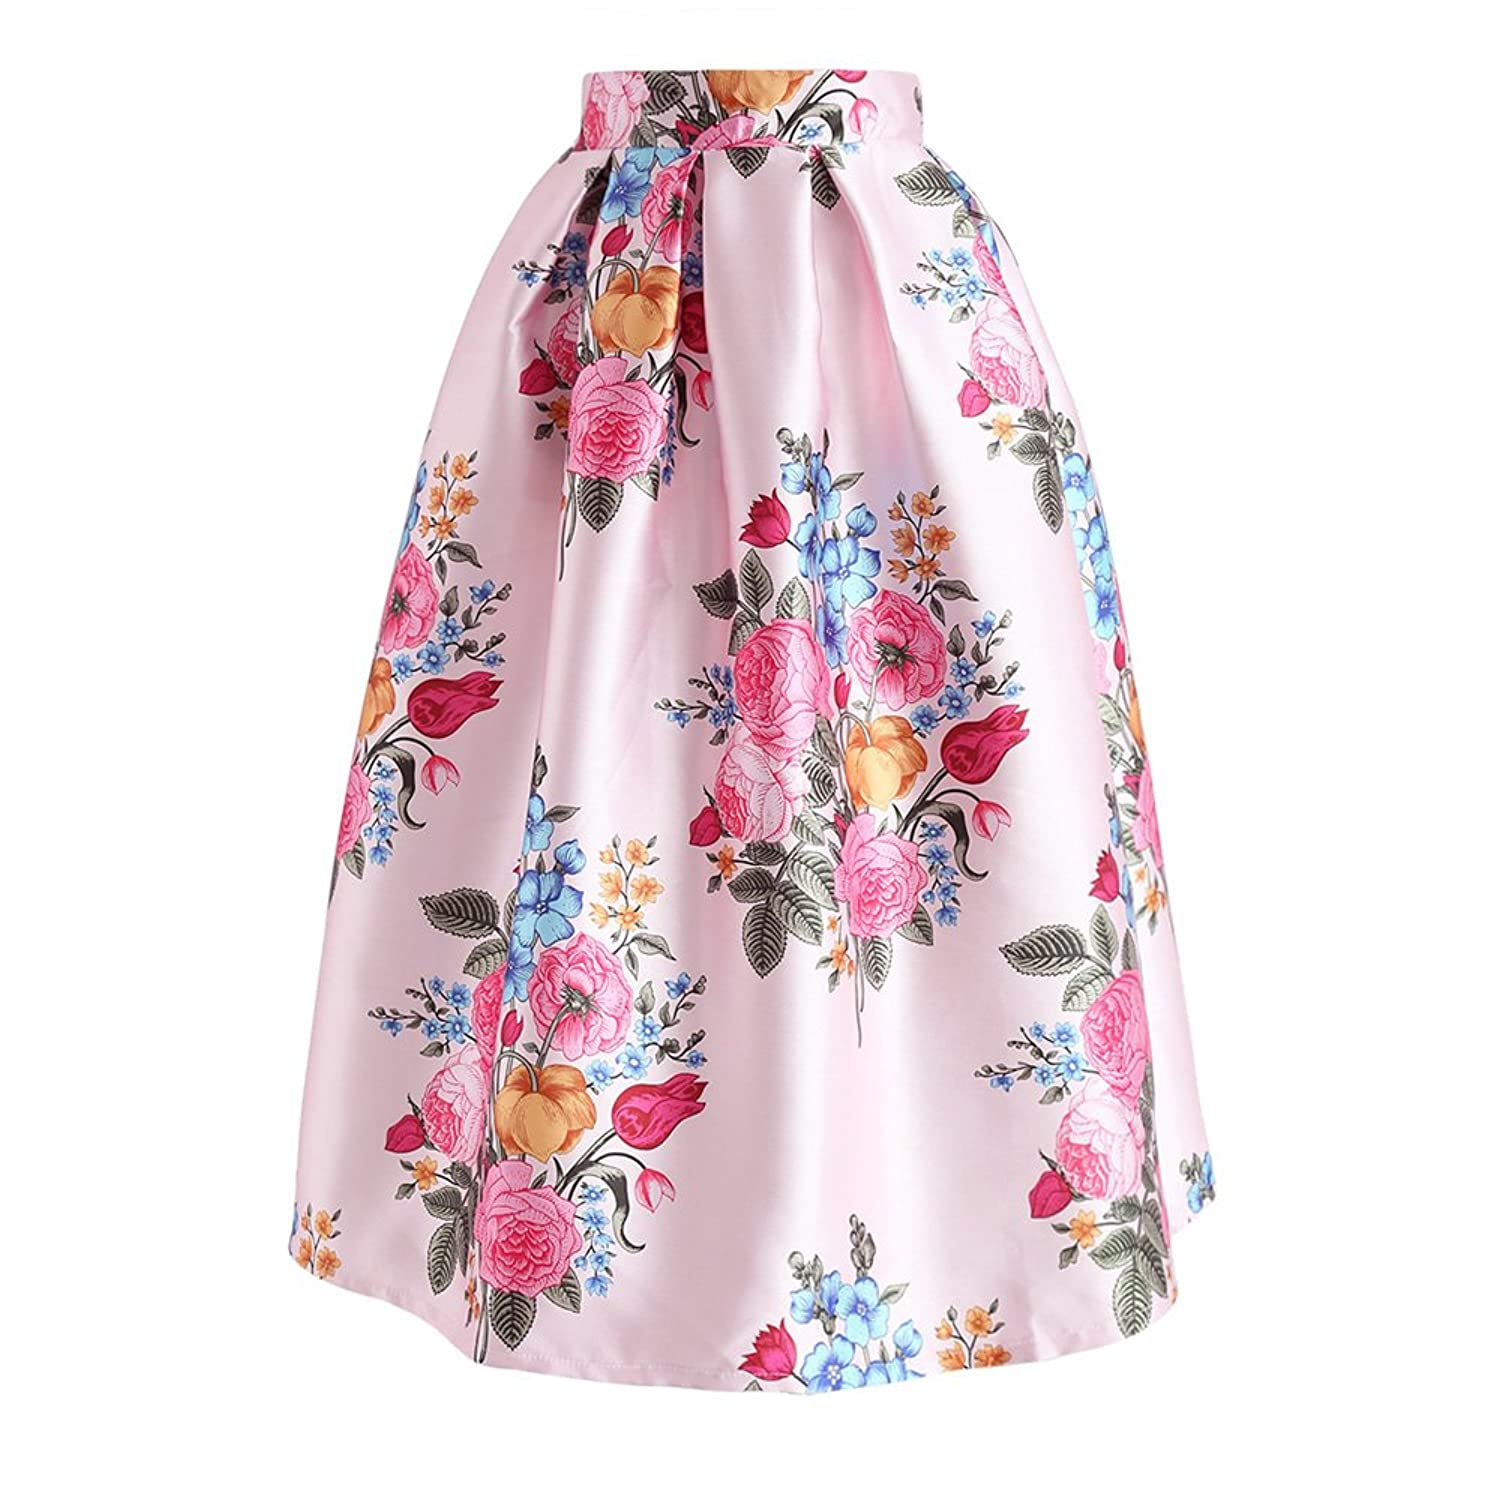 cb464ad537 Top1: Chicwish Women\'s Navy/Pink Floral Bouquet Printed Midi Skirt